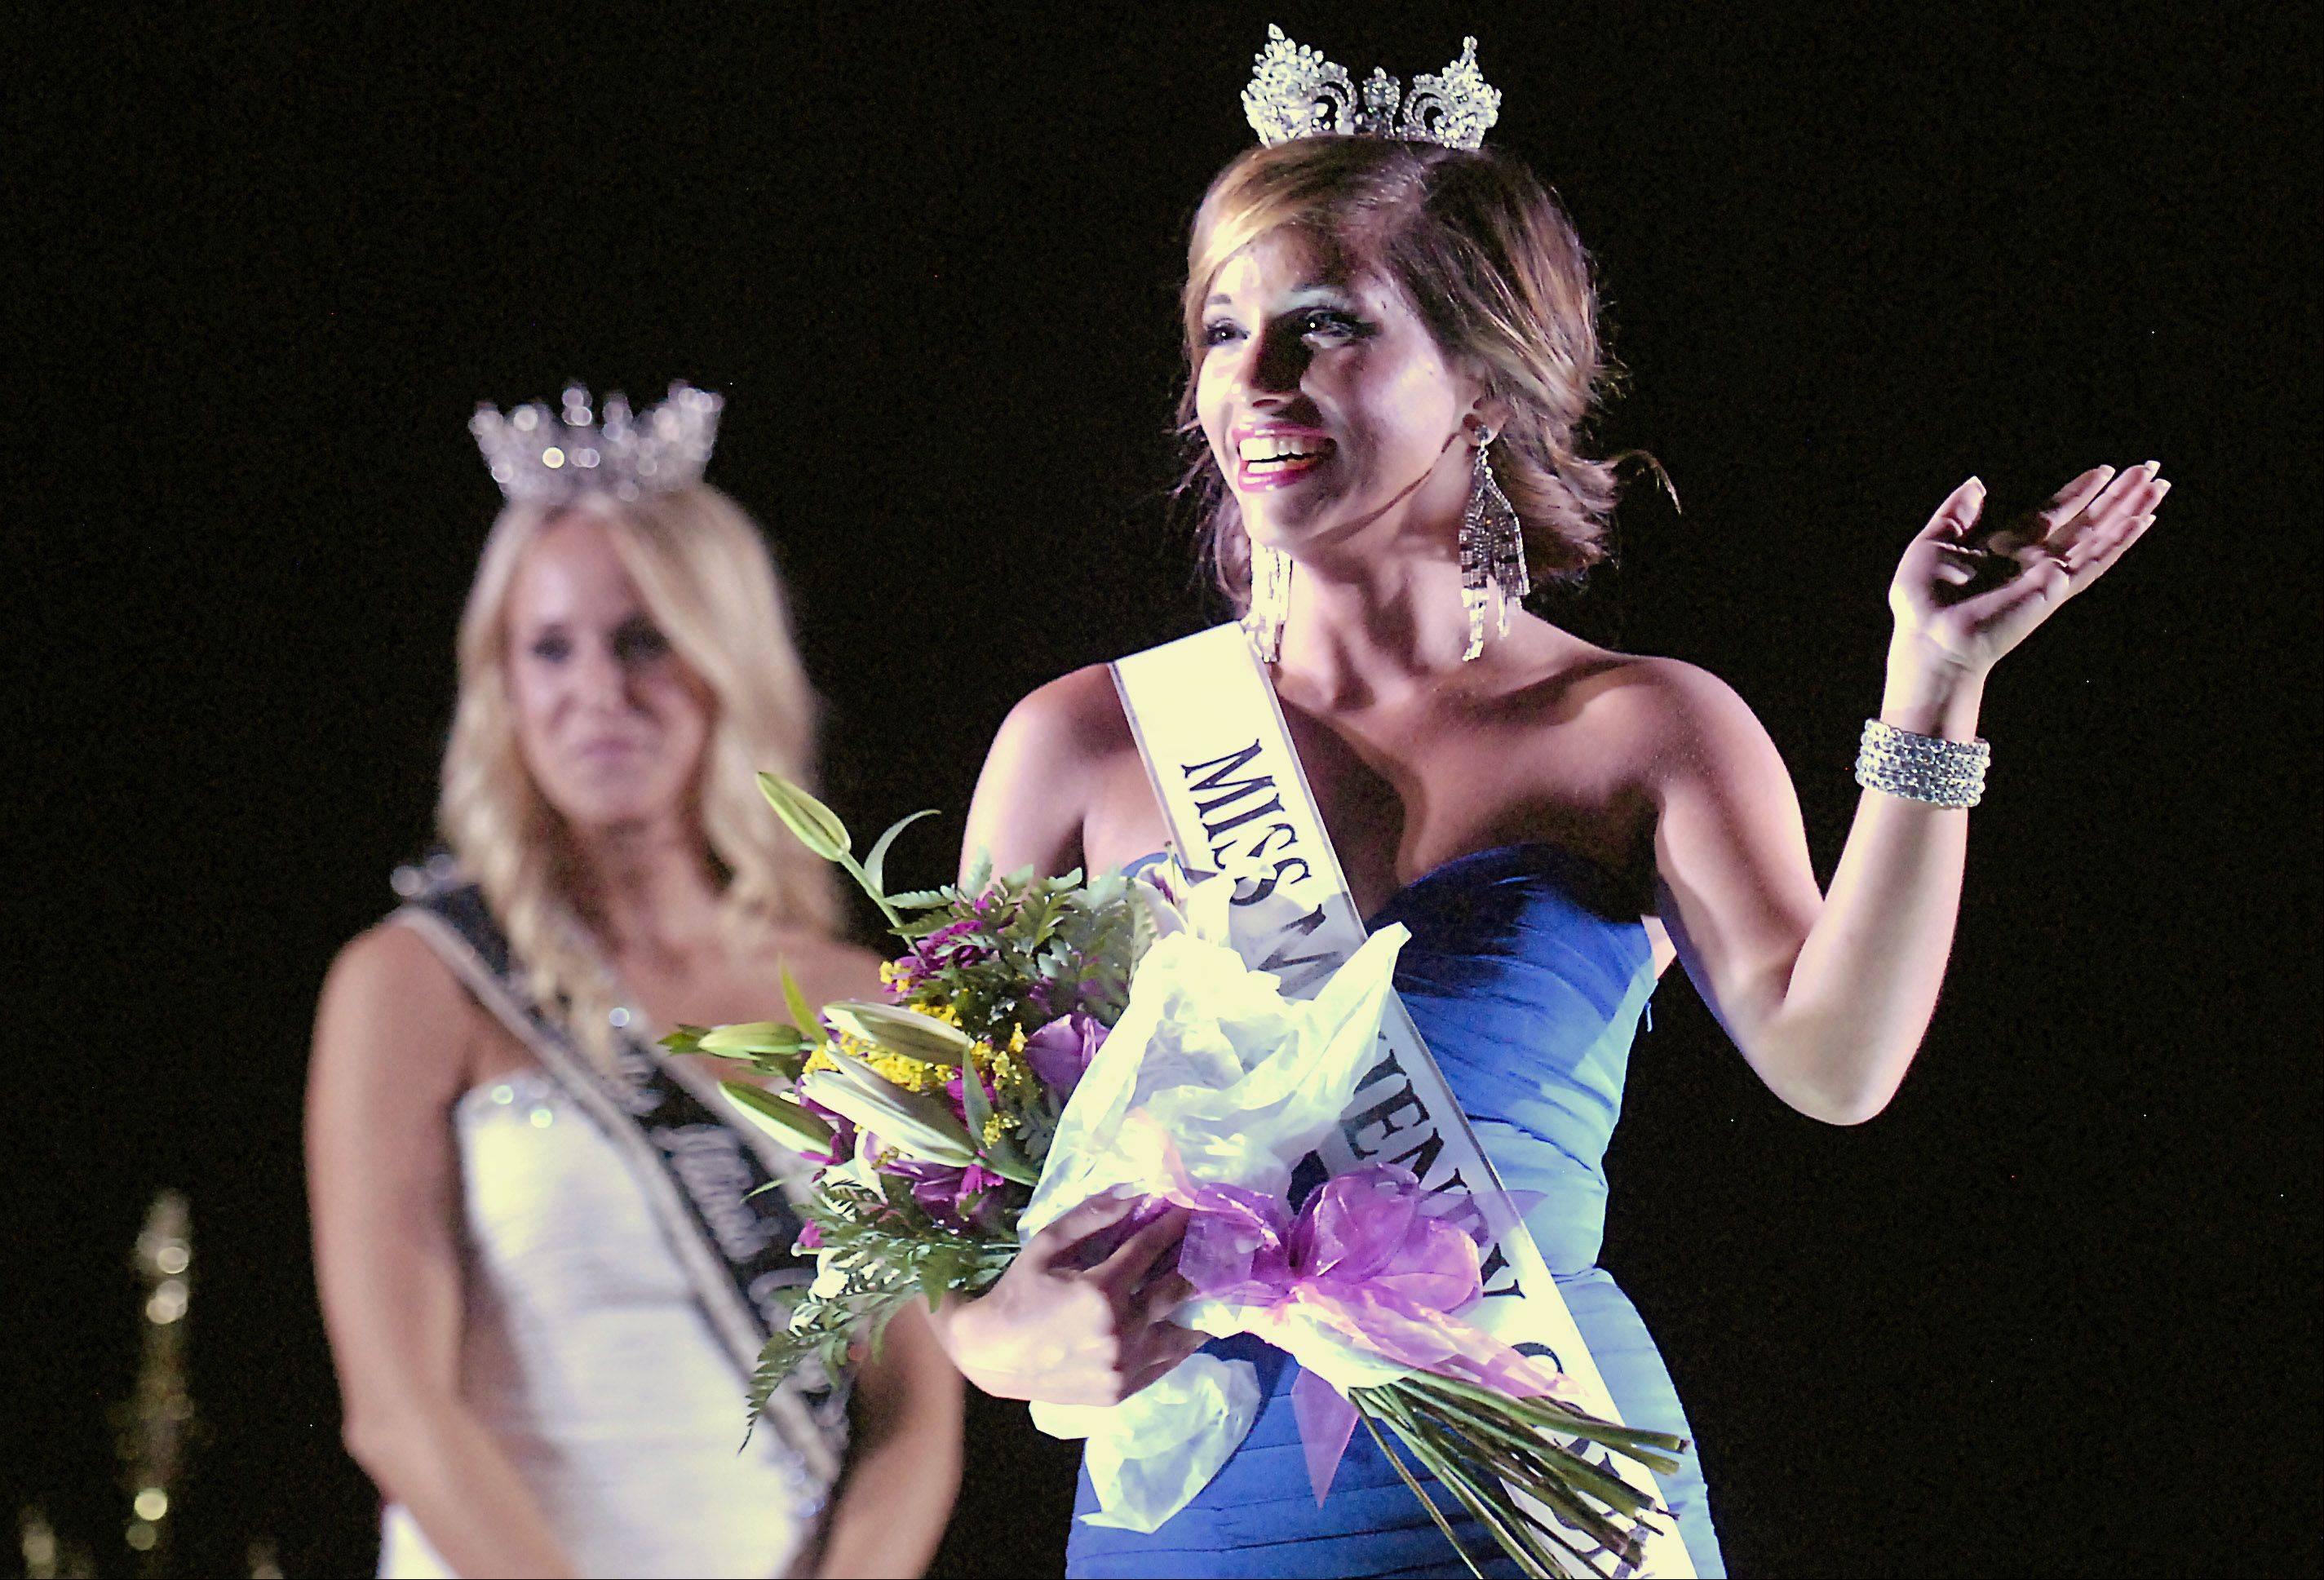 Samantha Bolet,17, of Lake in the Hills wins the crown in the 2012 Miss McHenry County Queen pageant. 2012 Miss Illinois County Fair Queen Brittani Schisler, left, was on hand to help with the festivities.